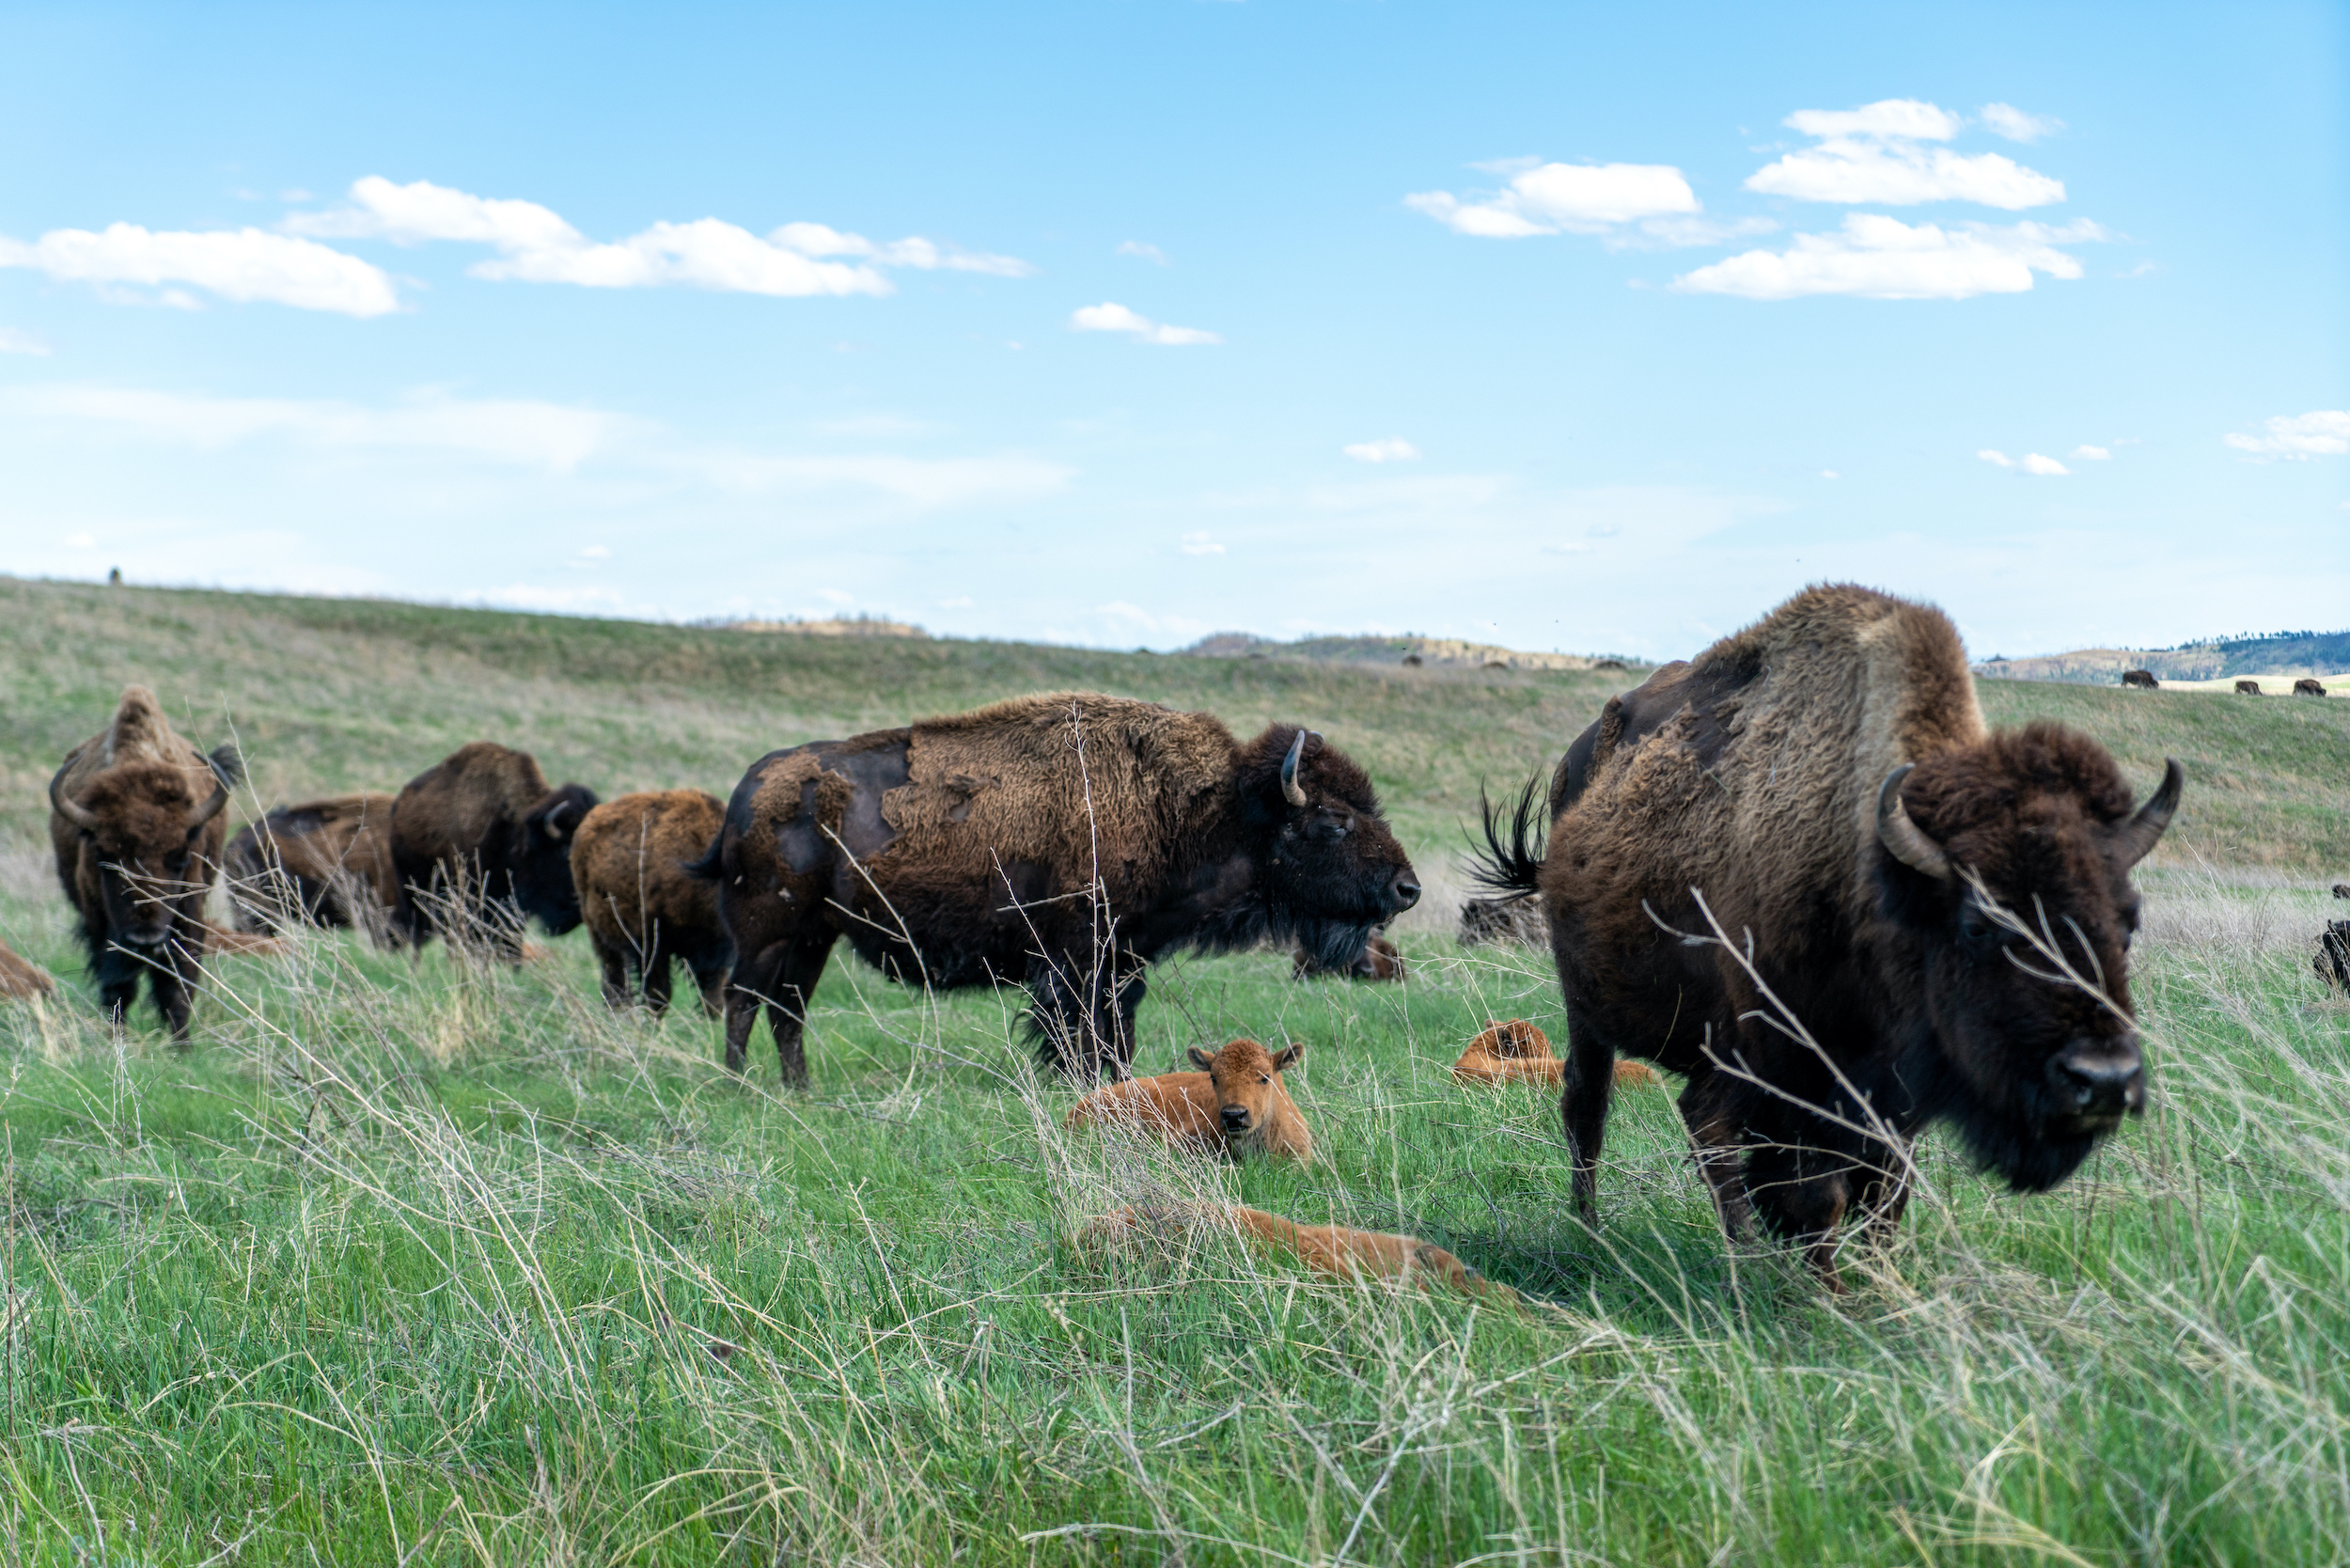 Tanka Fund's Regranting is Restoring Buffalo to Native Lands — and You Can Support the Return